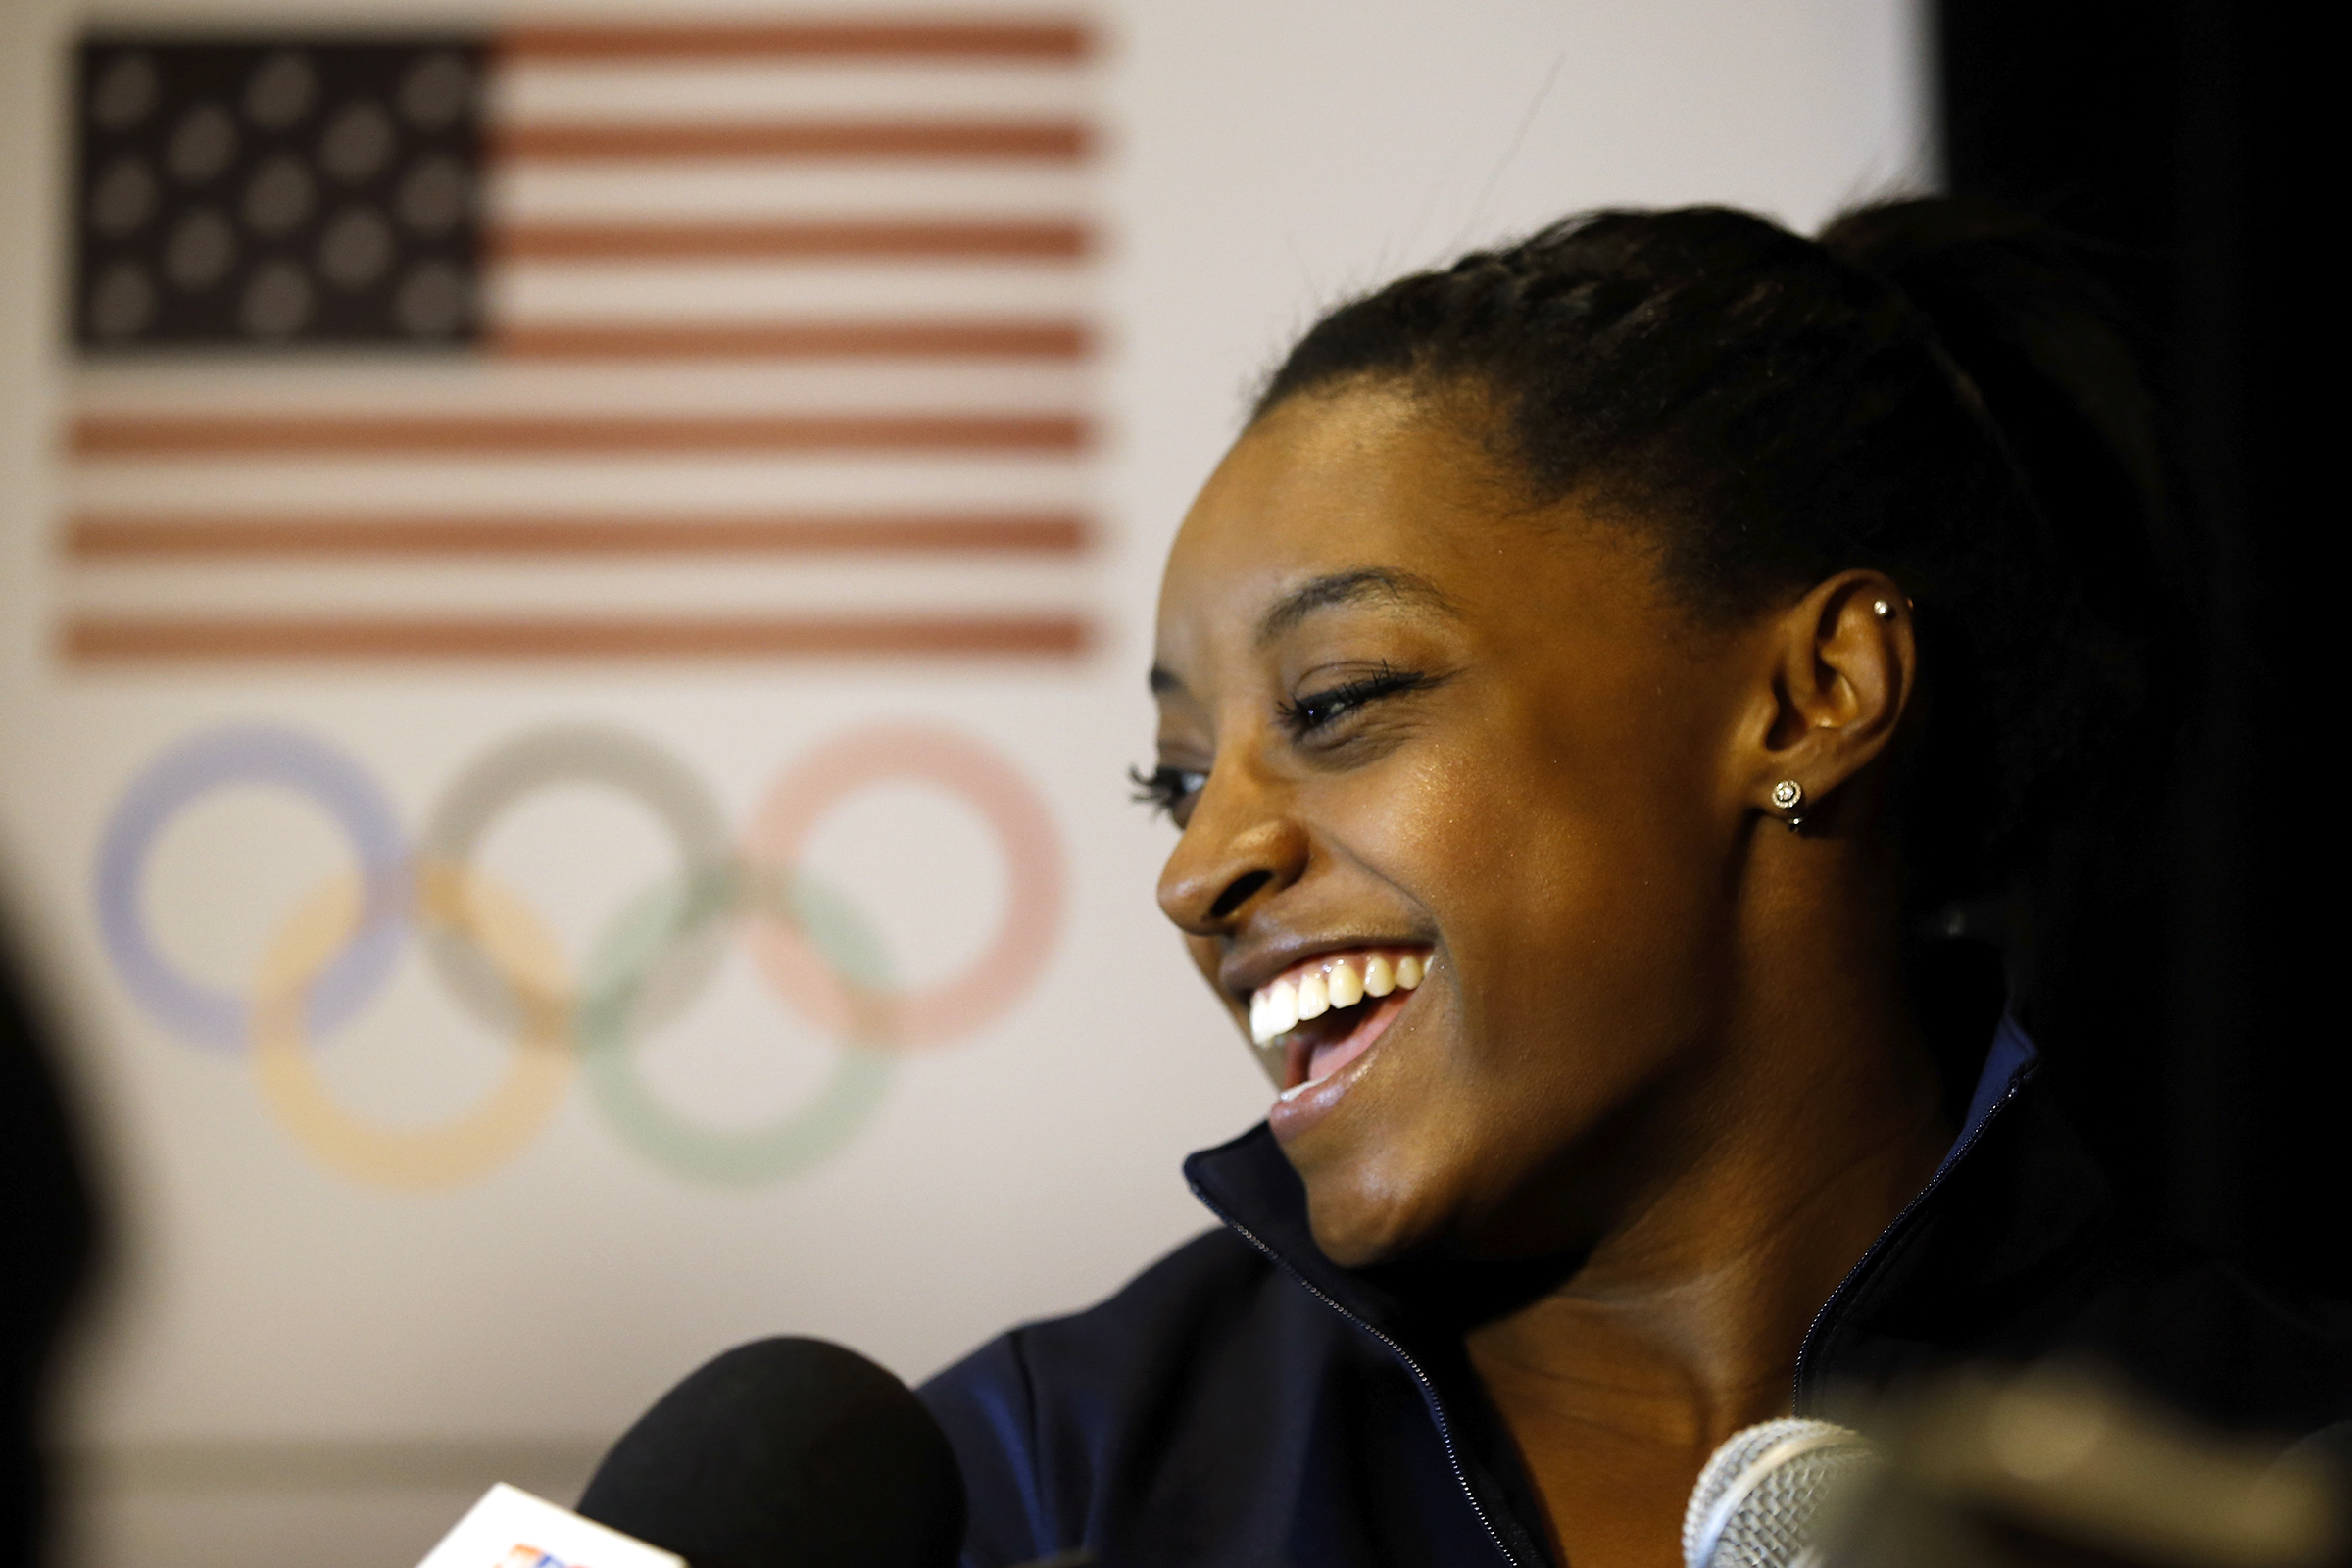 BEVERLY HILLS, CA - MARCH 07: Gymnast Simone Biles addresses the media at the USOC Olympic Media Summit at The Beverly Hilton Hotel on March 7, 2016 in Beverly Hills, California.   Todd Warshaw/Getty Images for the USOC/AFP